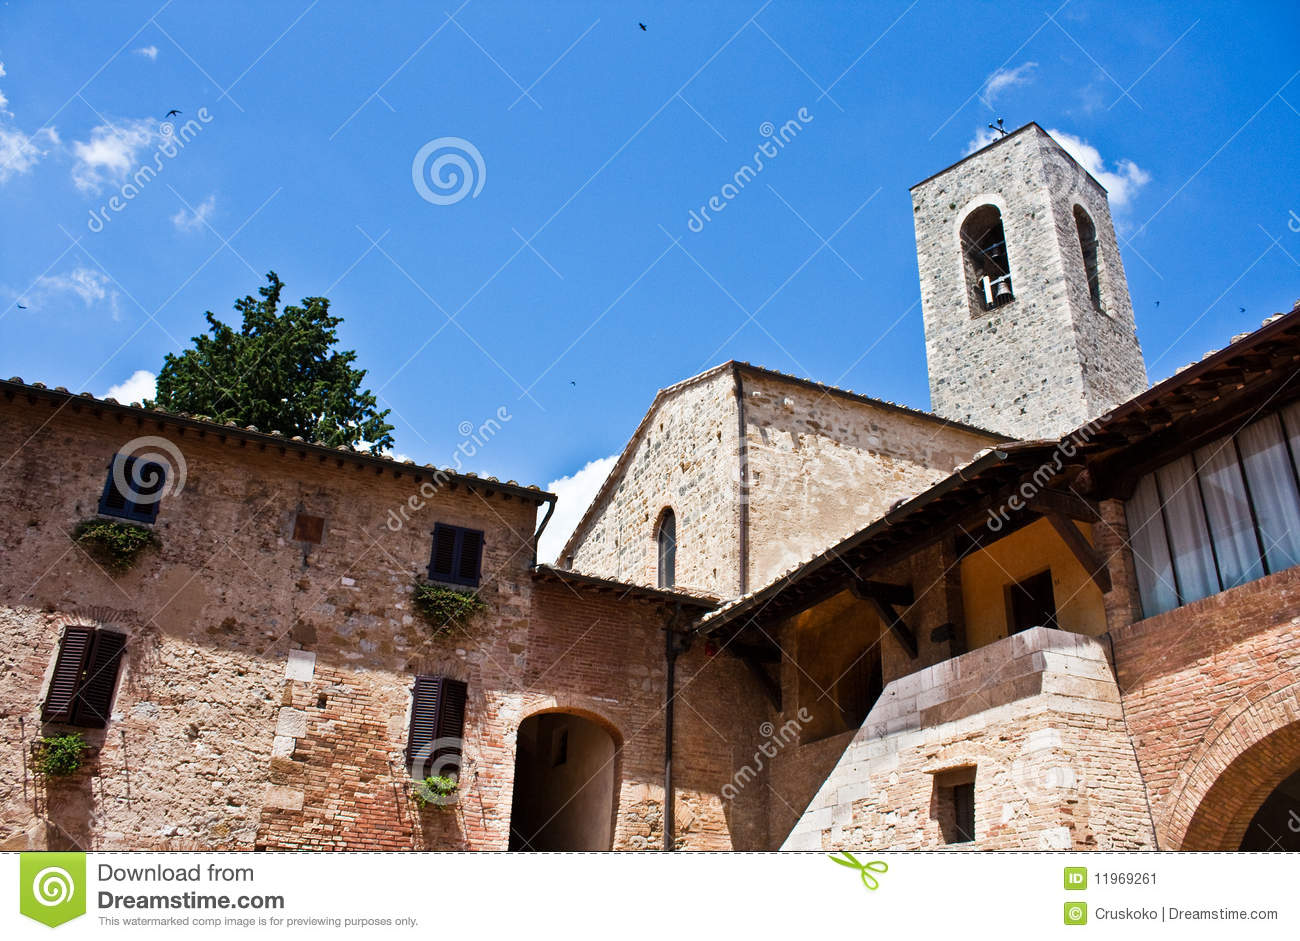 typical tuscan architecture stock image - image: 11969261